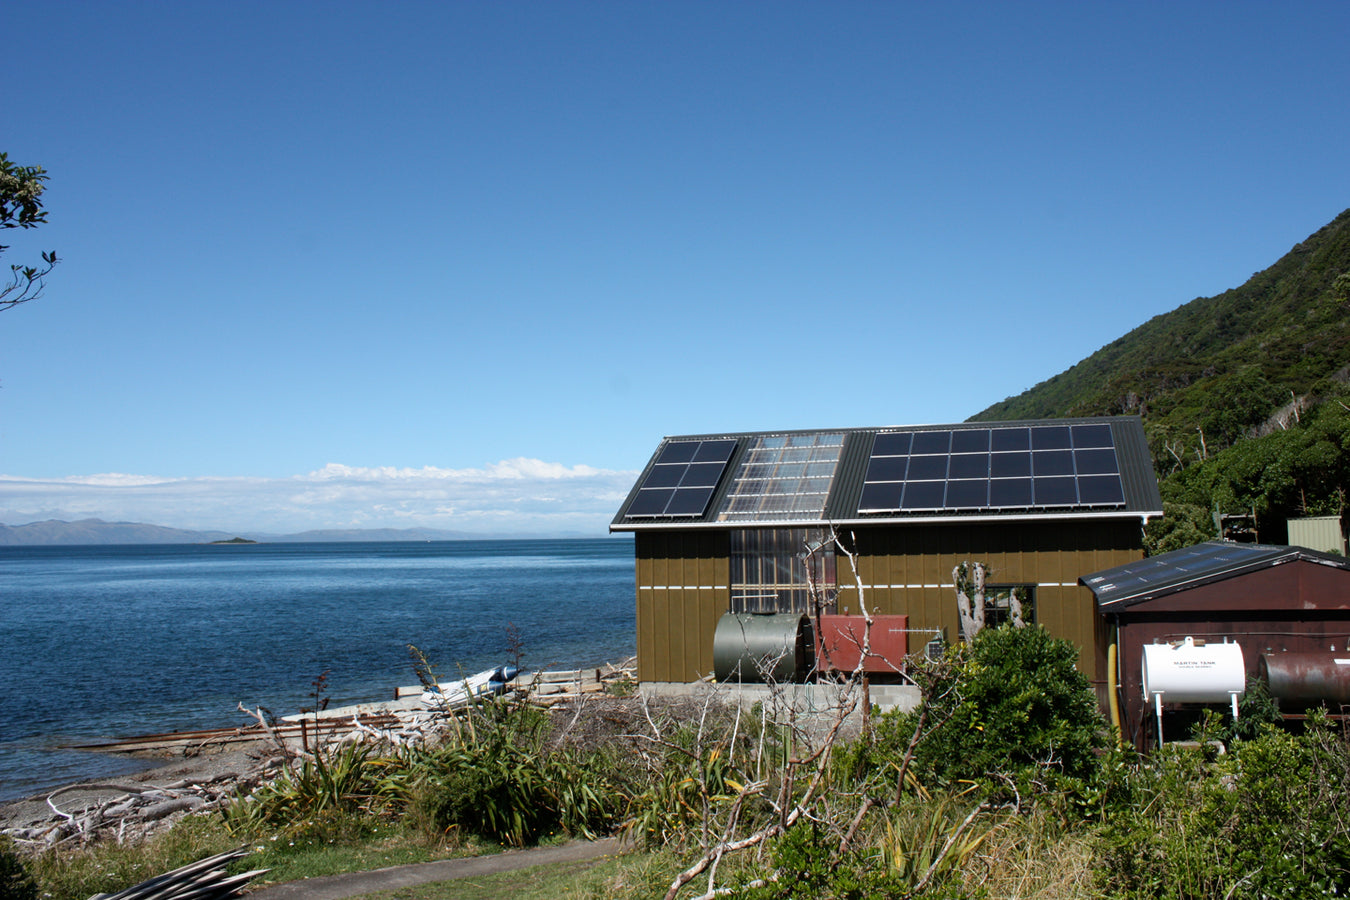 Off Grid Solar Array On Secluded Residence with Oceanic Backdrop